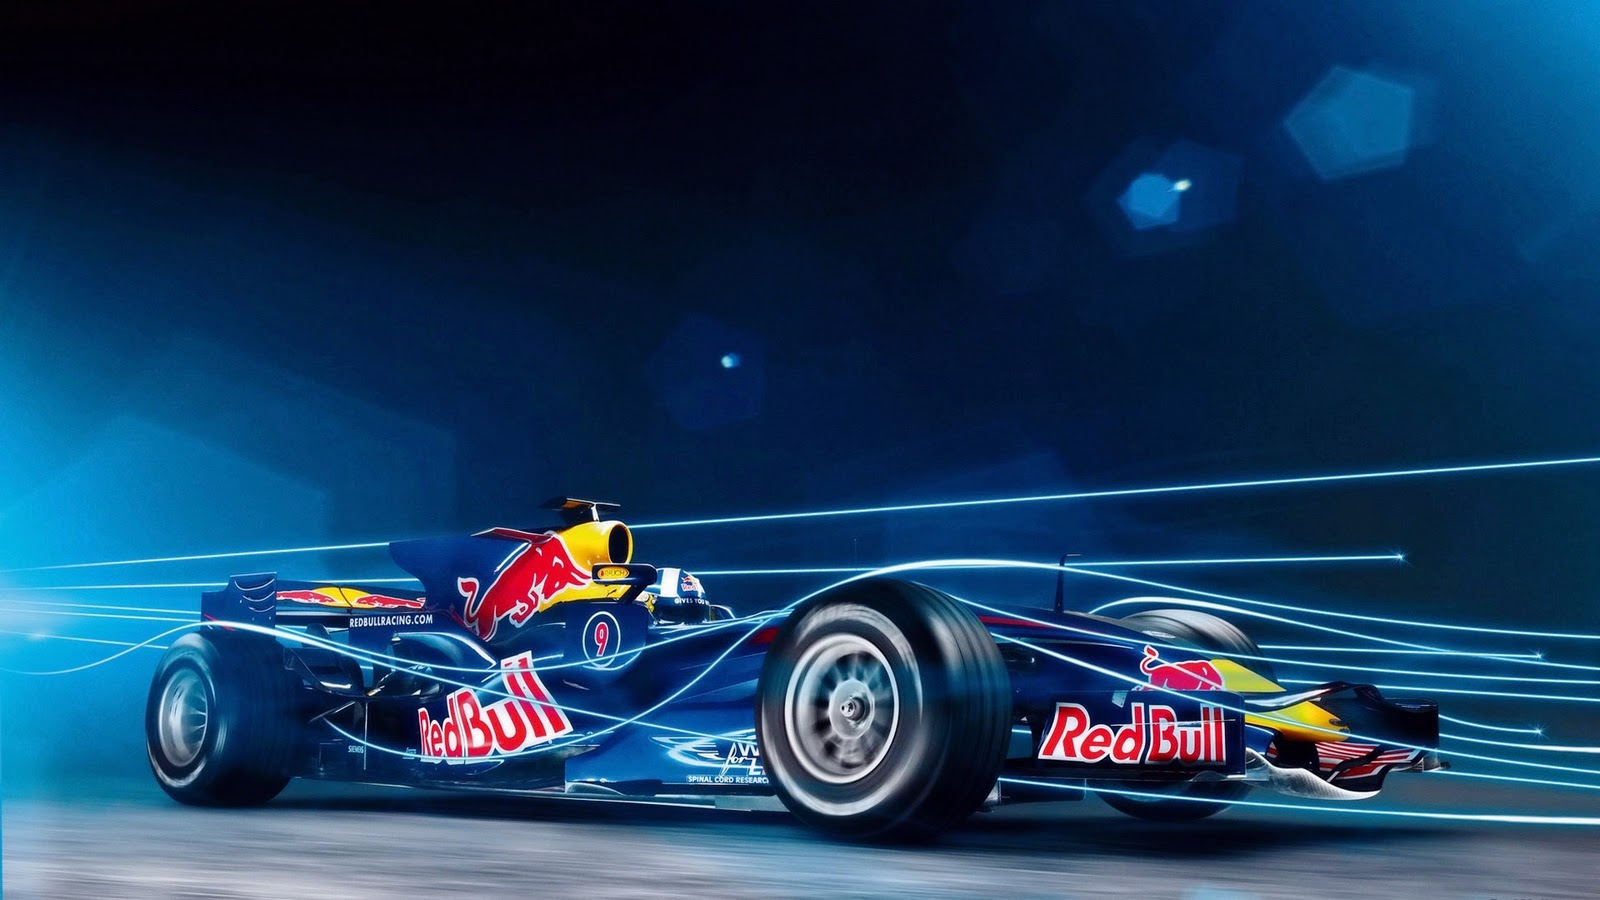 Red Bull HD Logo Wallpapers Download Wallpapers in HD for your 1600x900